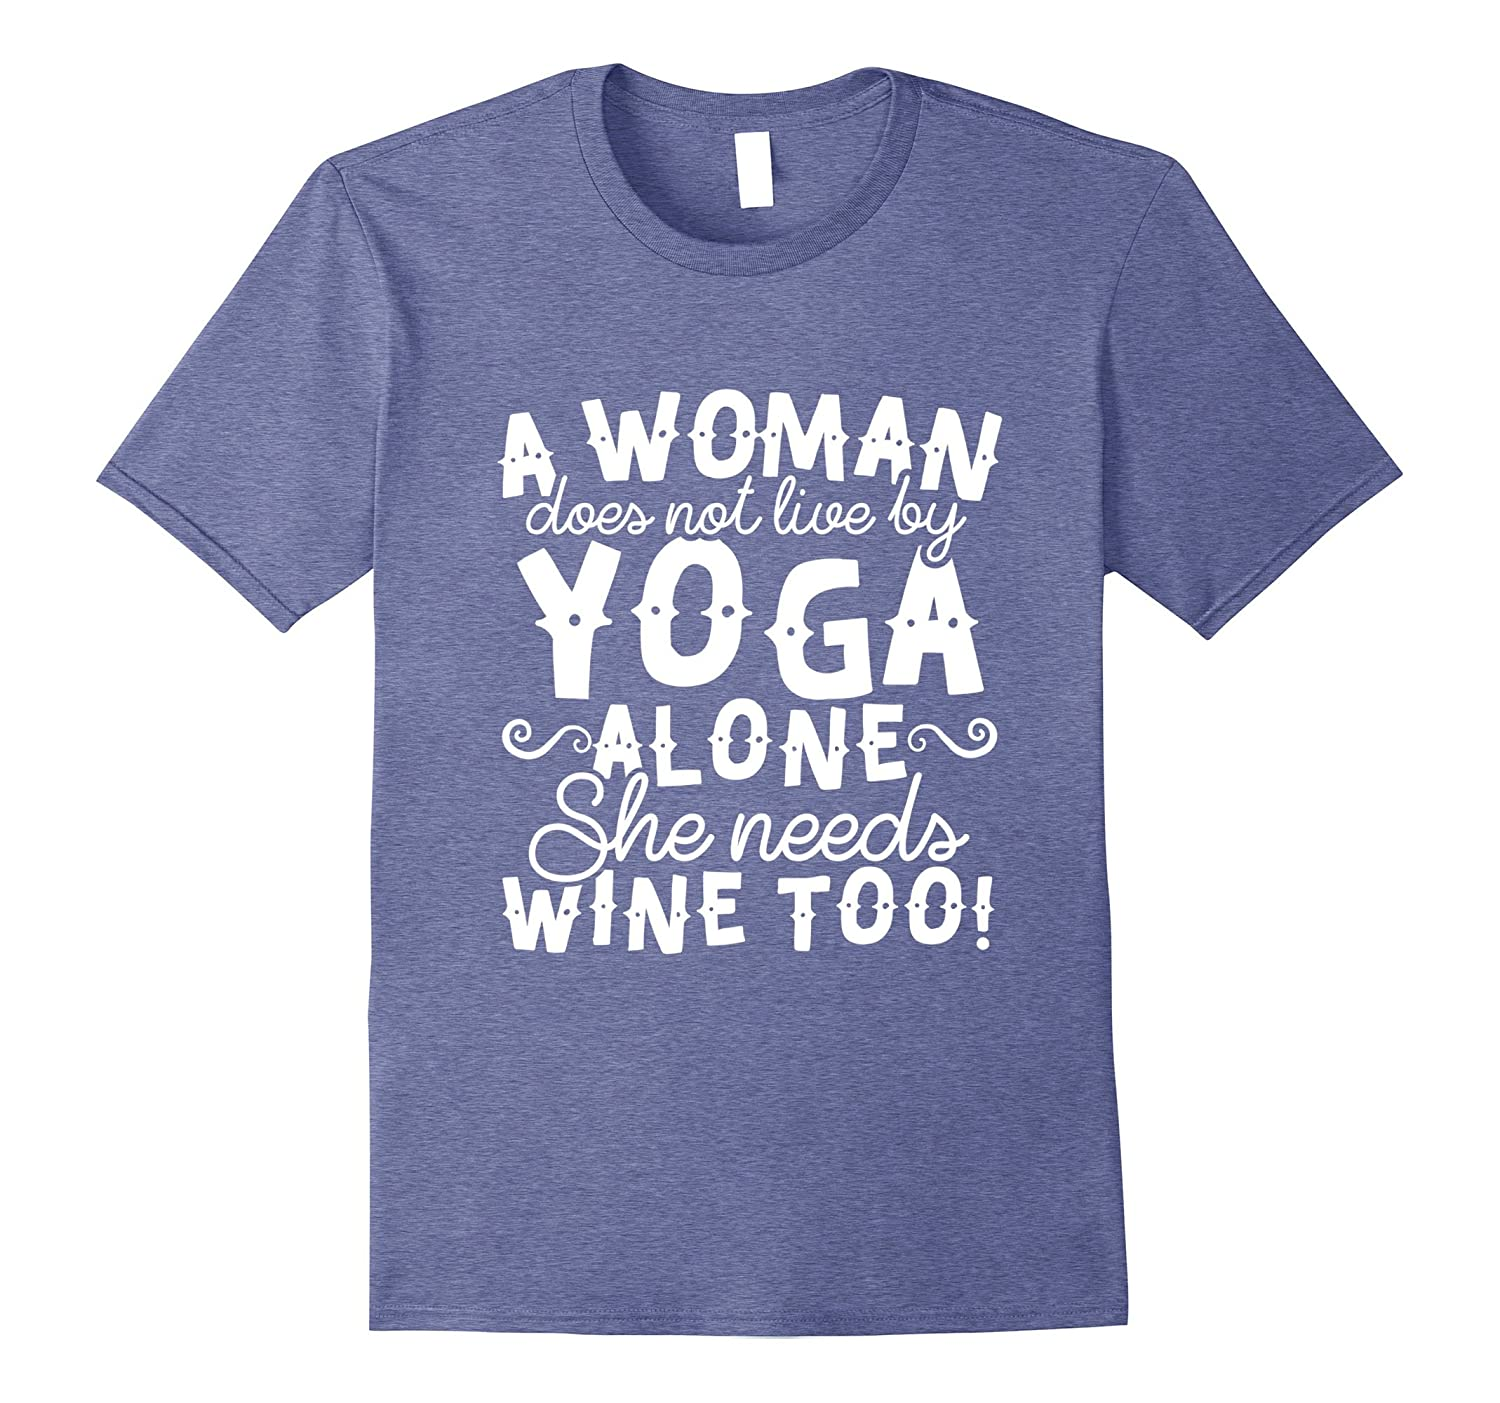 A Woman Does Not Live on Yoga Alone - Needs Wine Too Tshirt-TH